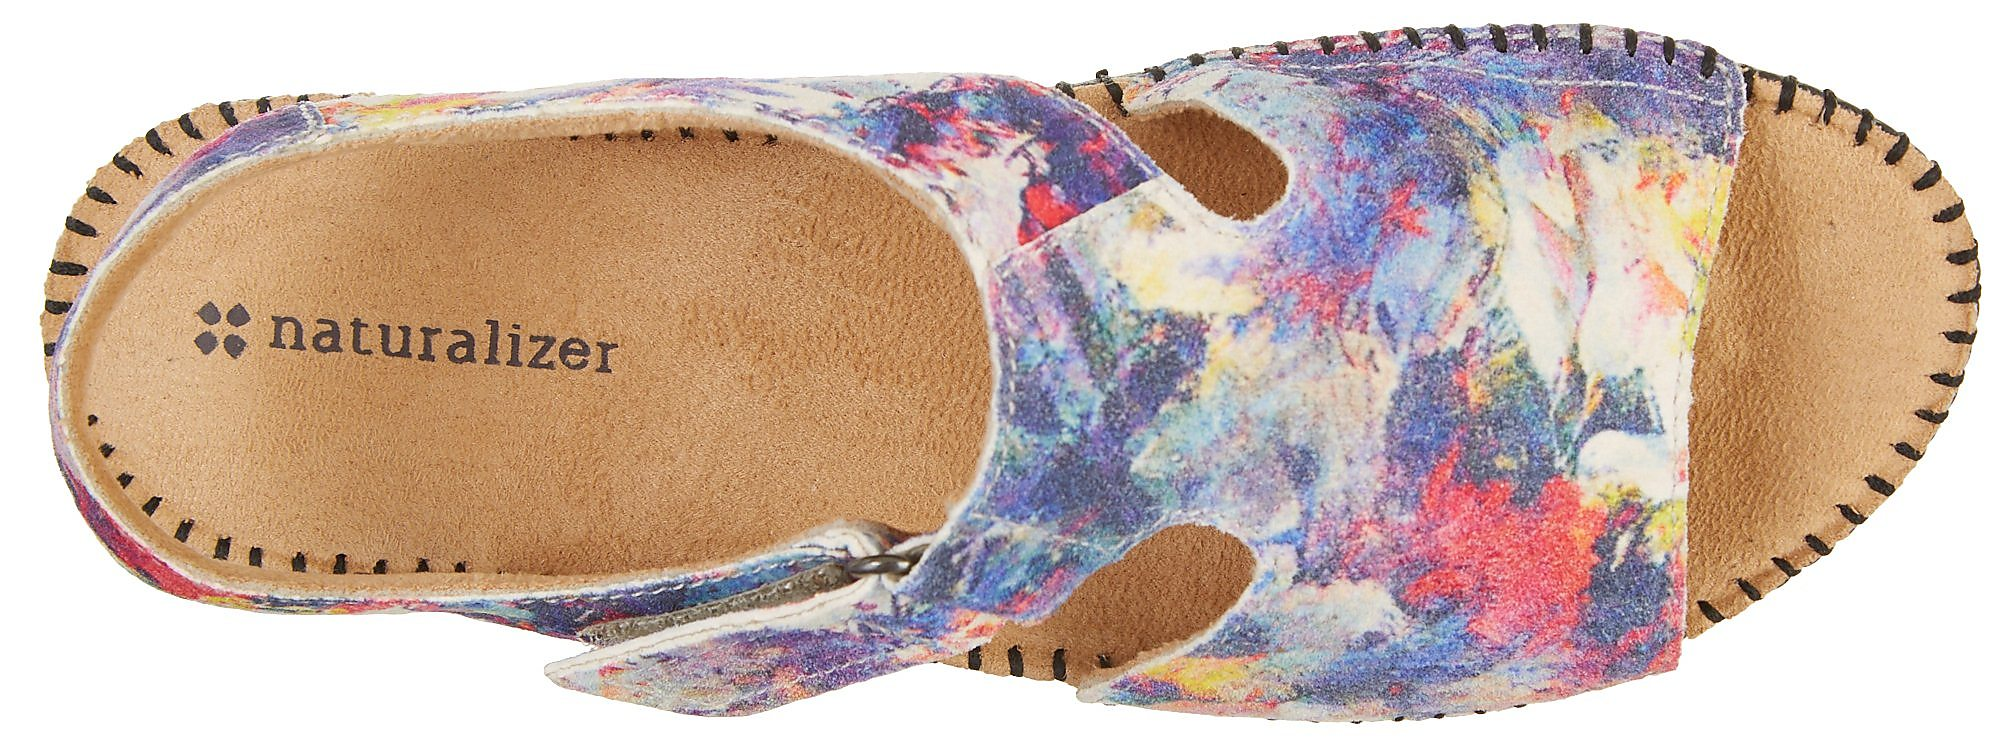 Naturalizer-Womens-Scout-II-Sandals thumbnail 12